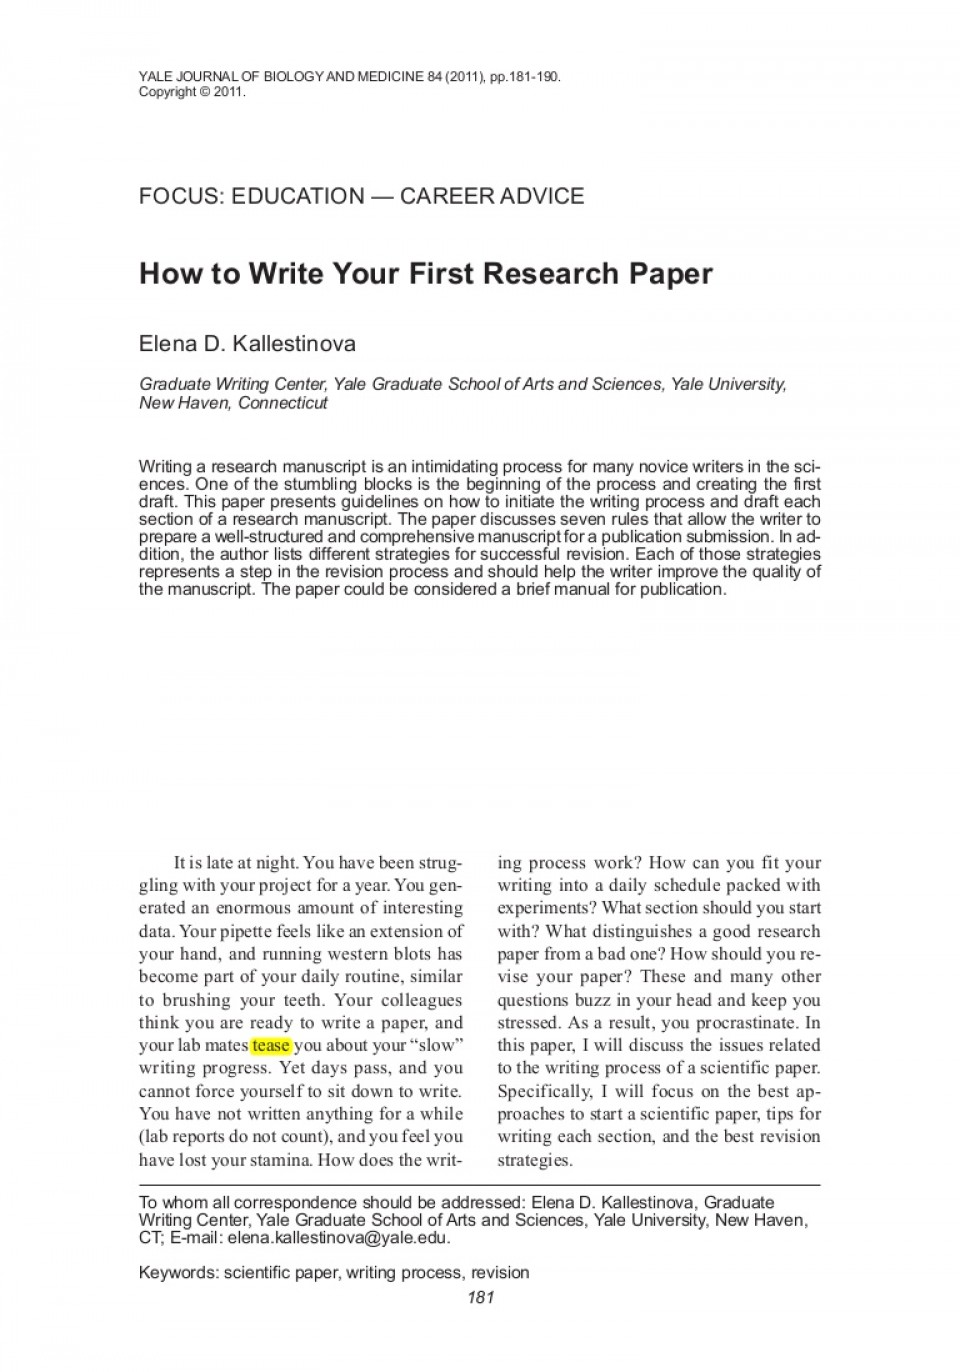 024 Research Paper Write Papers Howtowriteyourfirstresearchpaper Lva1 App6891 Thumbnail Frightening How To A Introduction Apa Service In Latex 960